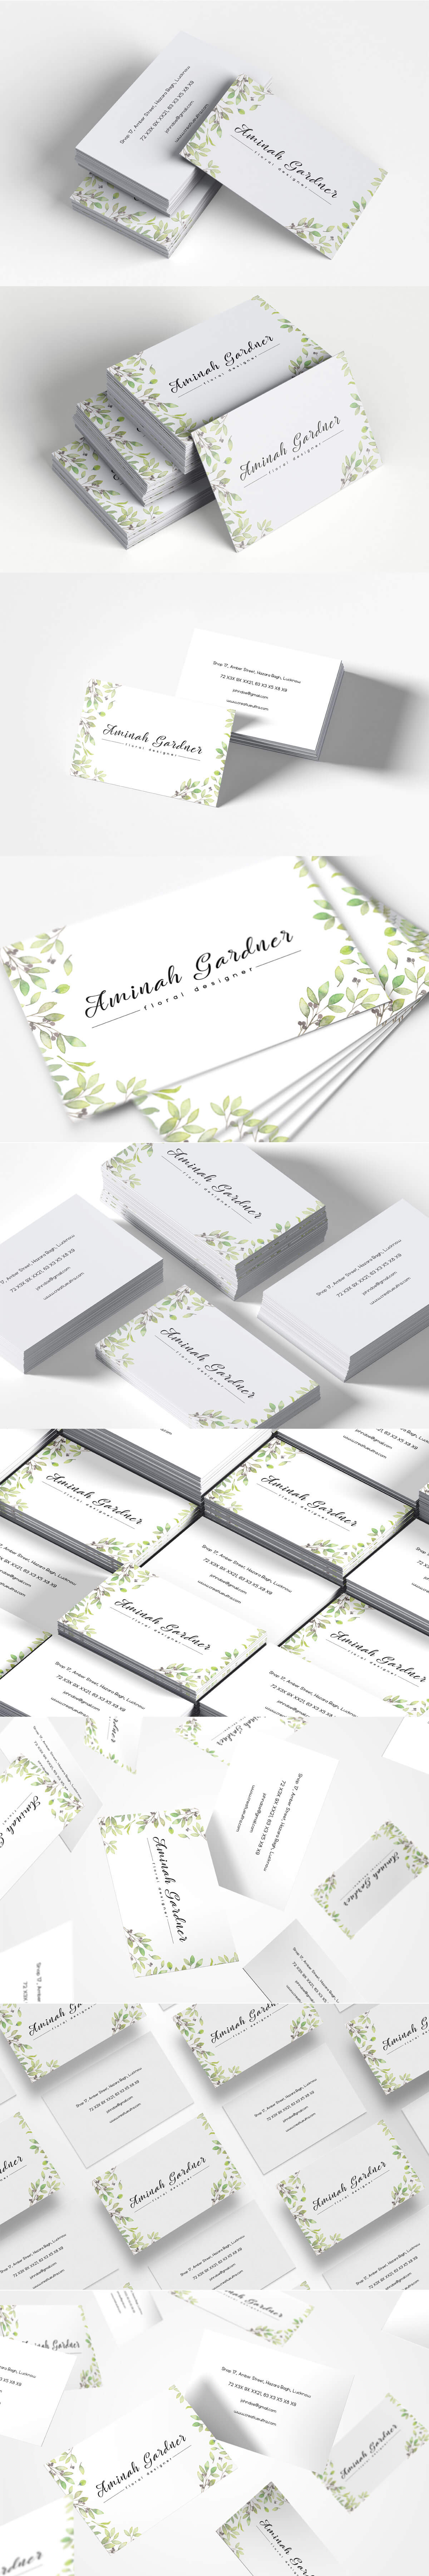 Free #Floral Designer #Business #Card Template is a minimalist and elegant business card.